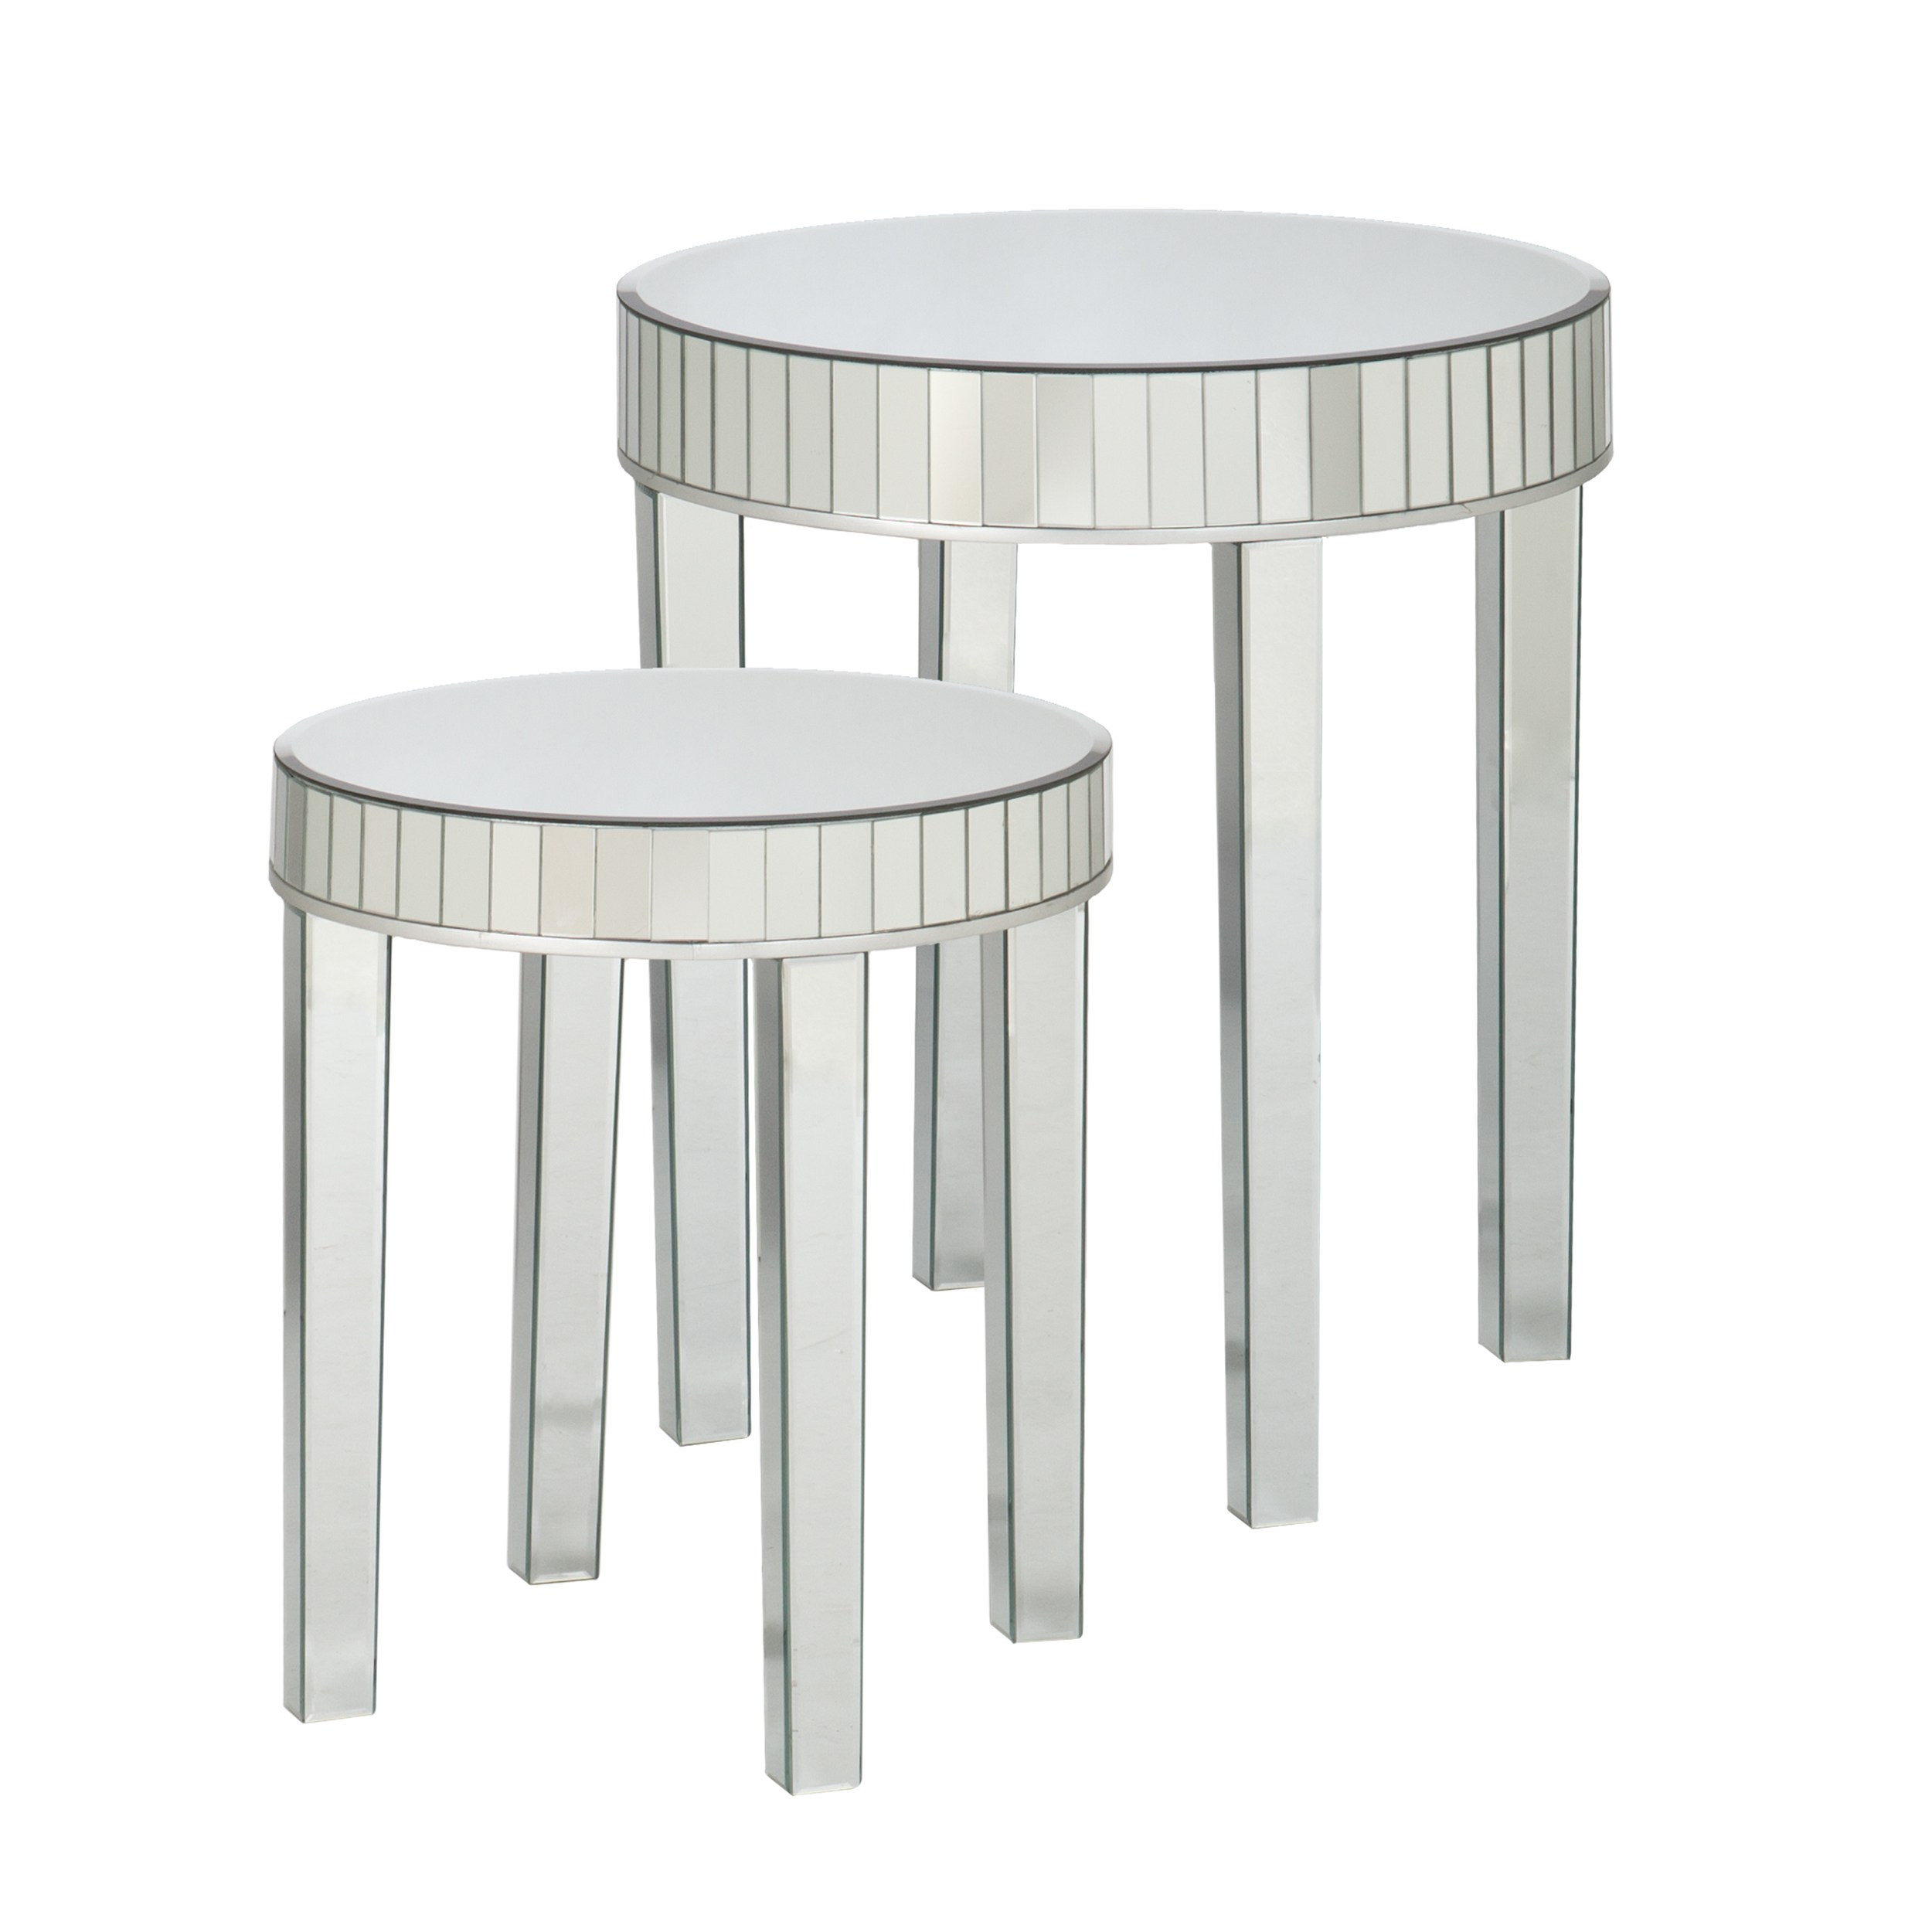 silver orchid olivia round mirrored nesting accent table upton home tifton set free shipping today black telephone teak rocking chairs target cocktail telesco legs white corner